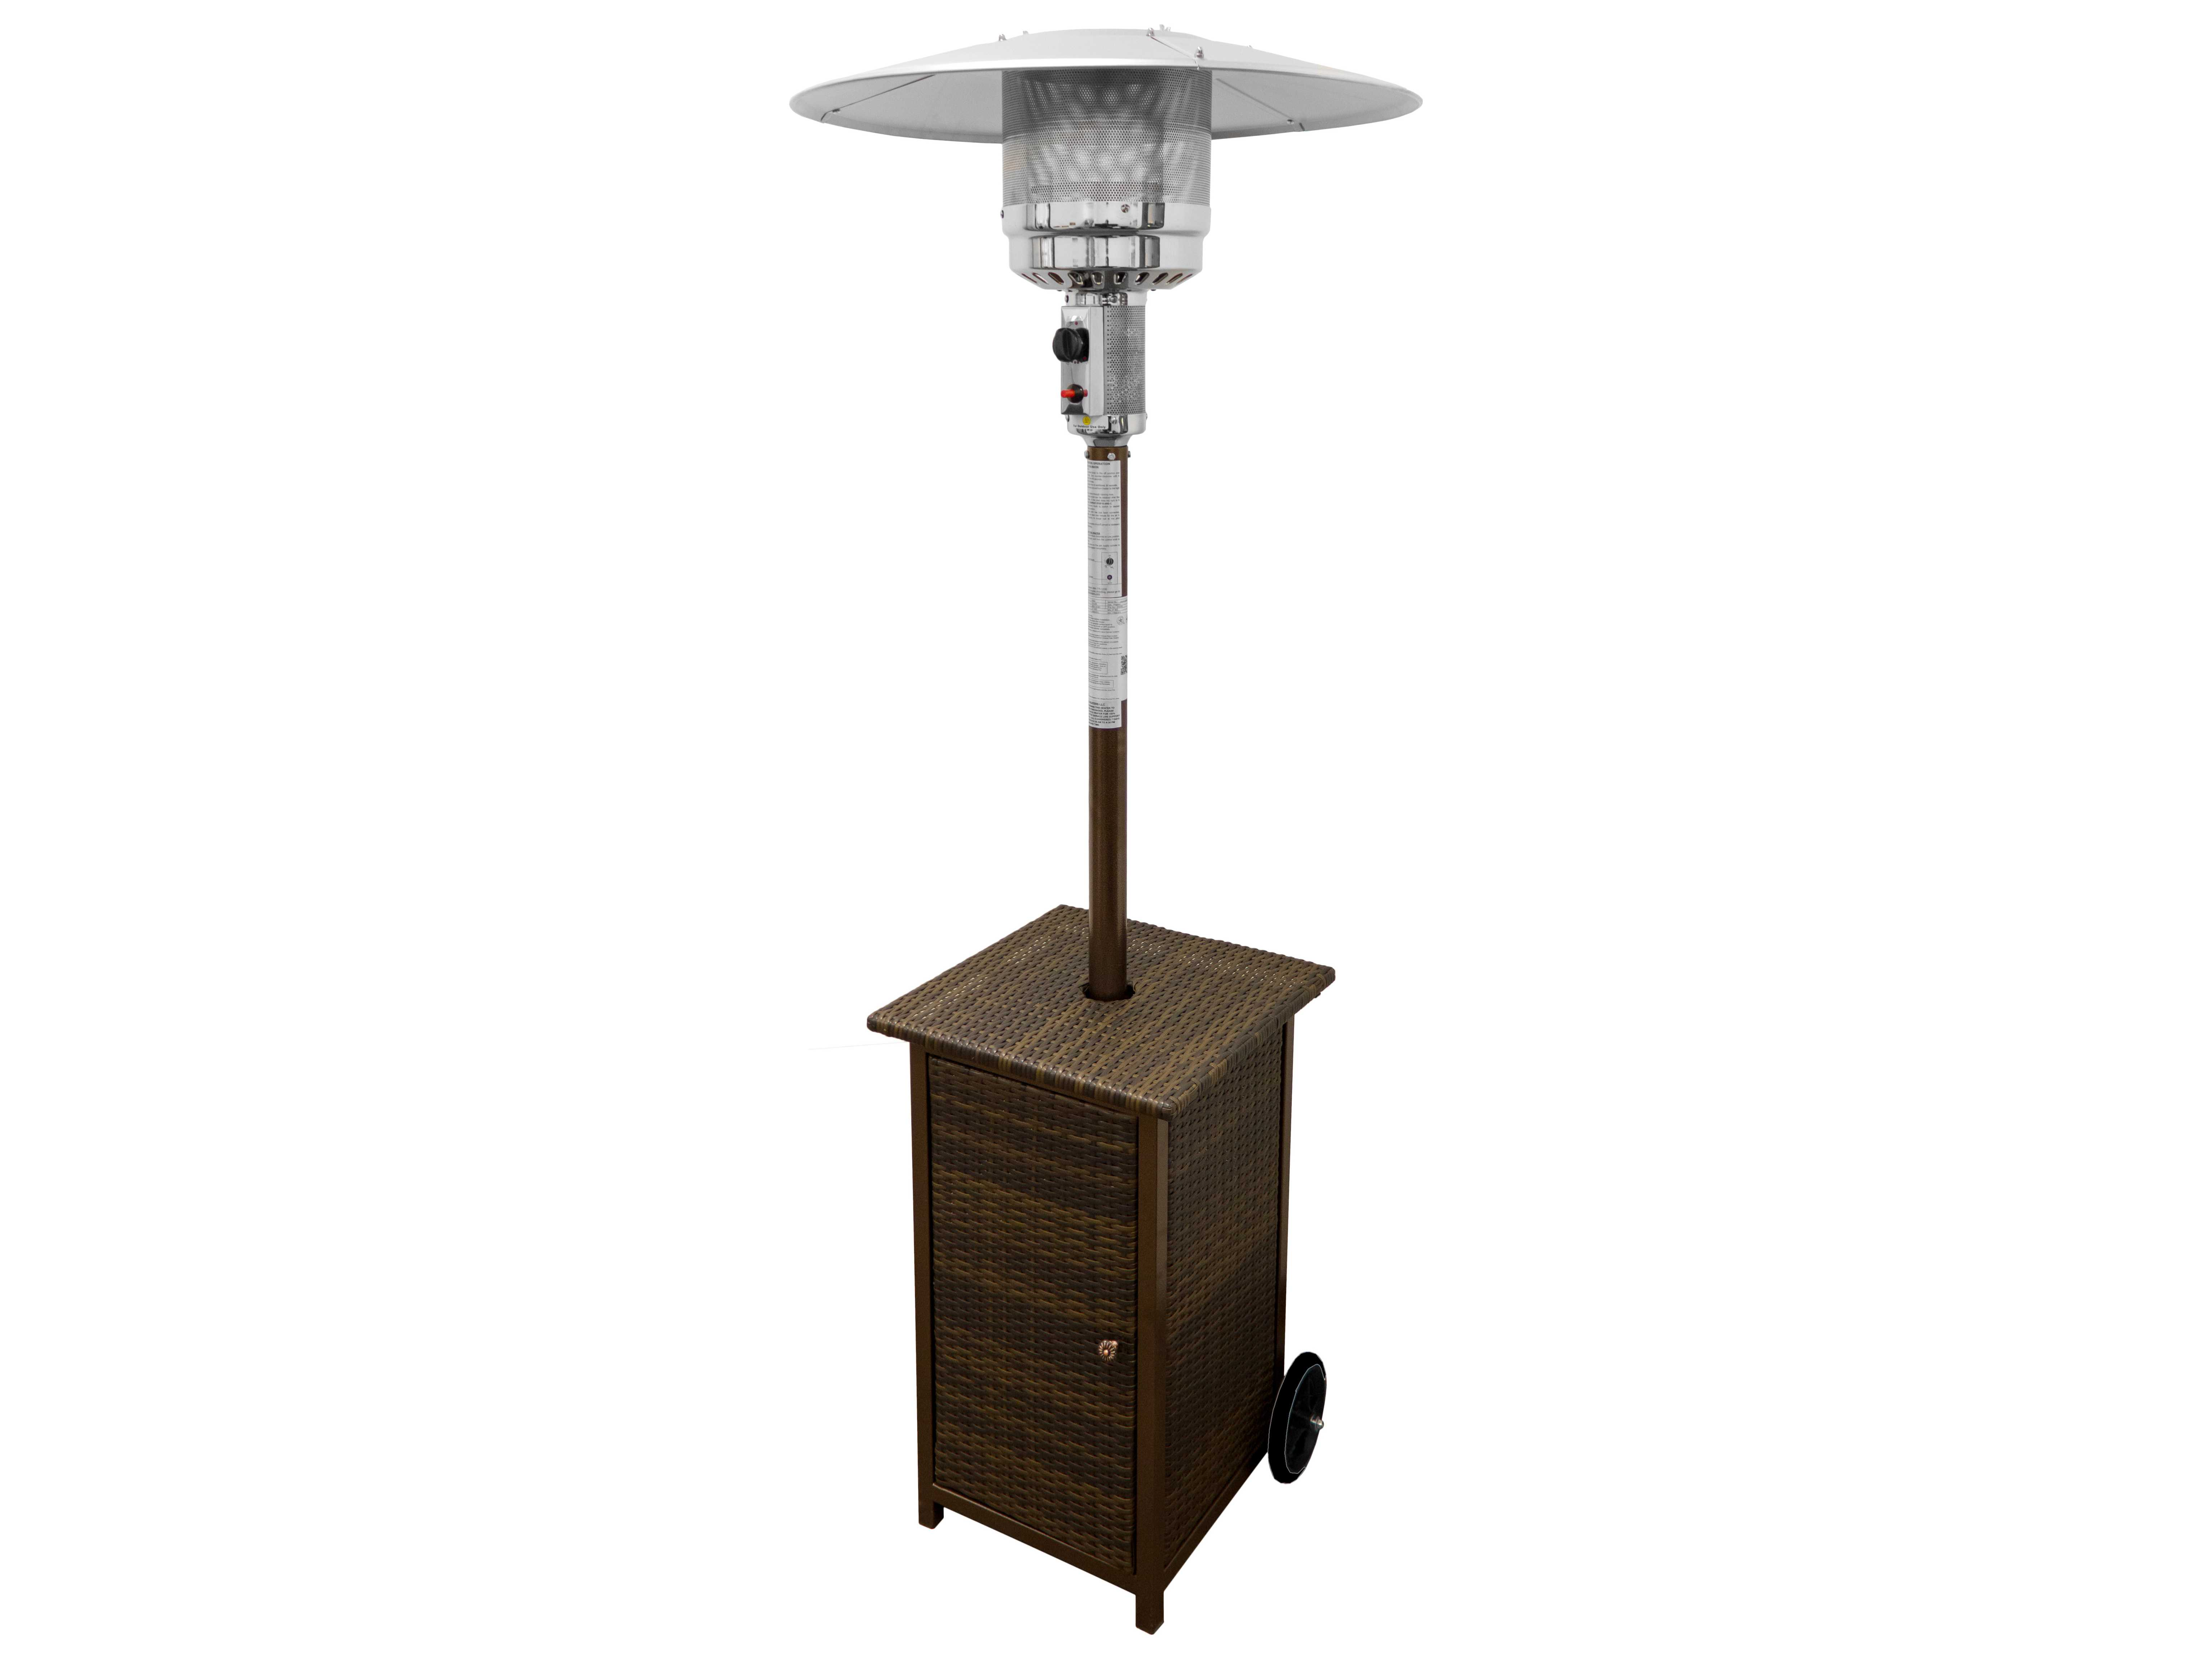 new and az club design natural rental patio top ideas heaters awesome outdoorpropaneheaters of outdoor phoenix heater gas home